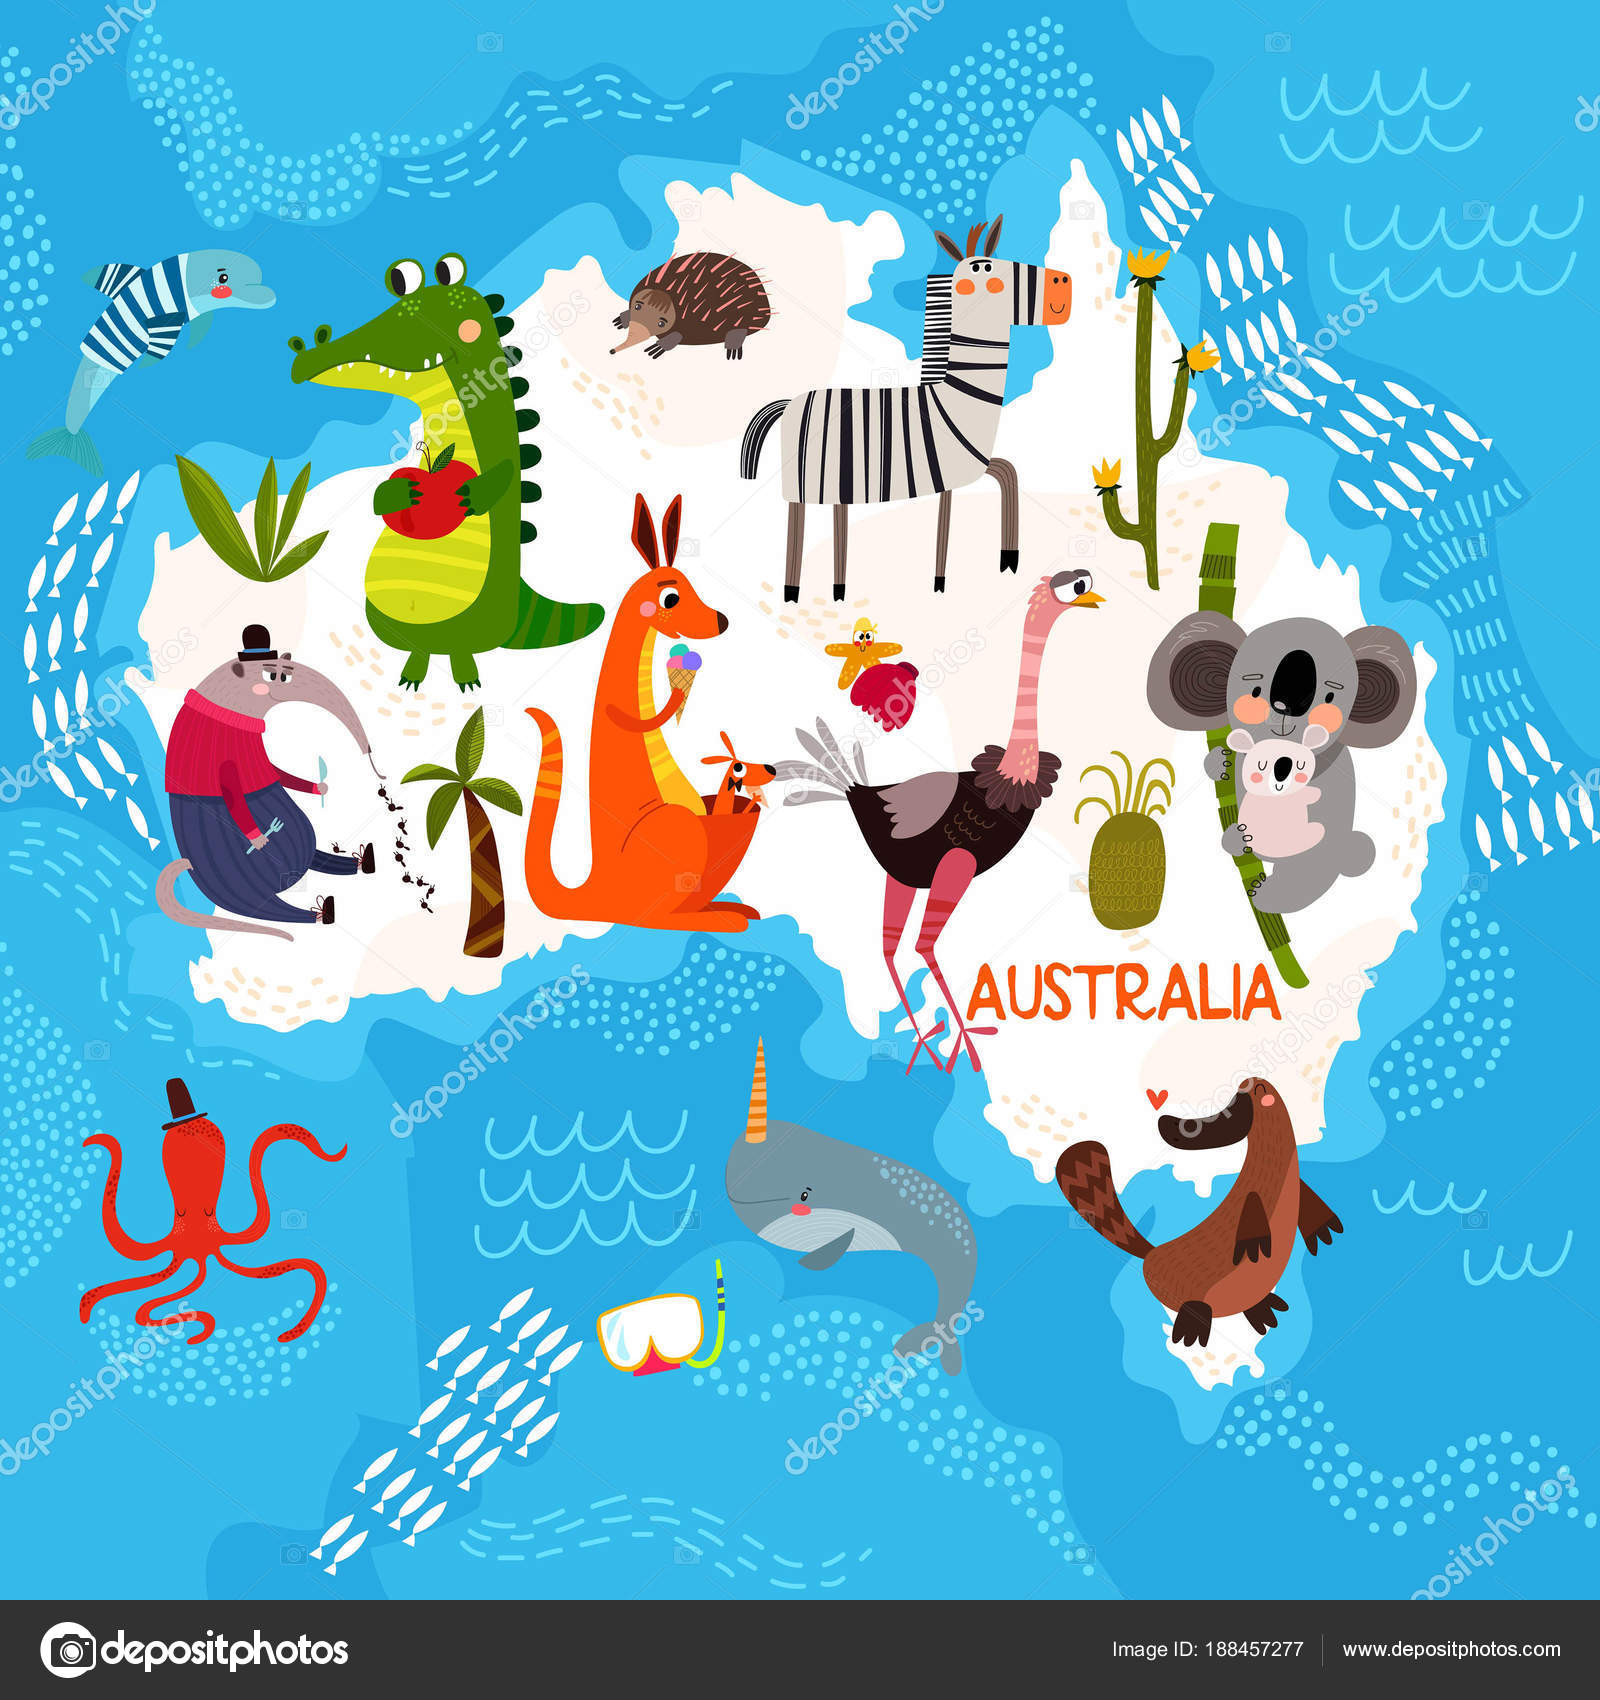 Cartoon world map with traditional animals illustrated map of a cartoon world map with traditional animals illustrated map of a stock vector gumiabroncs Images